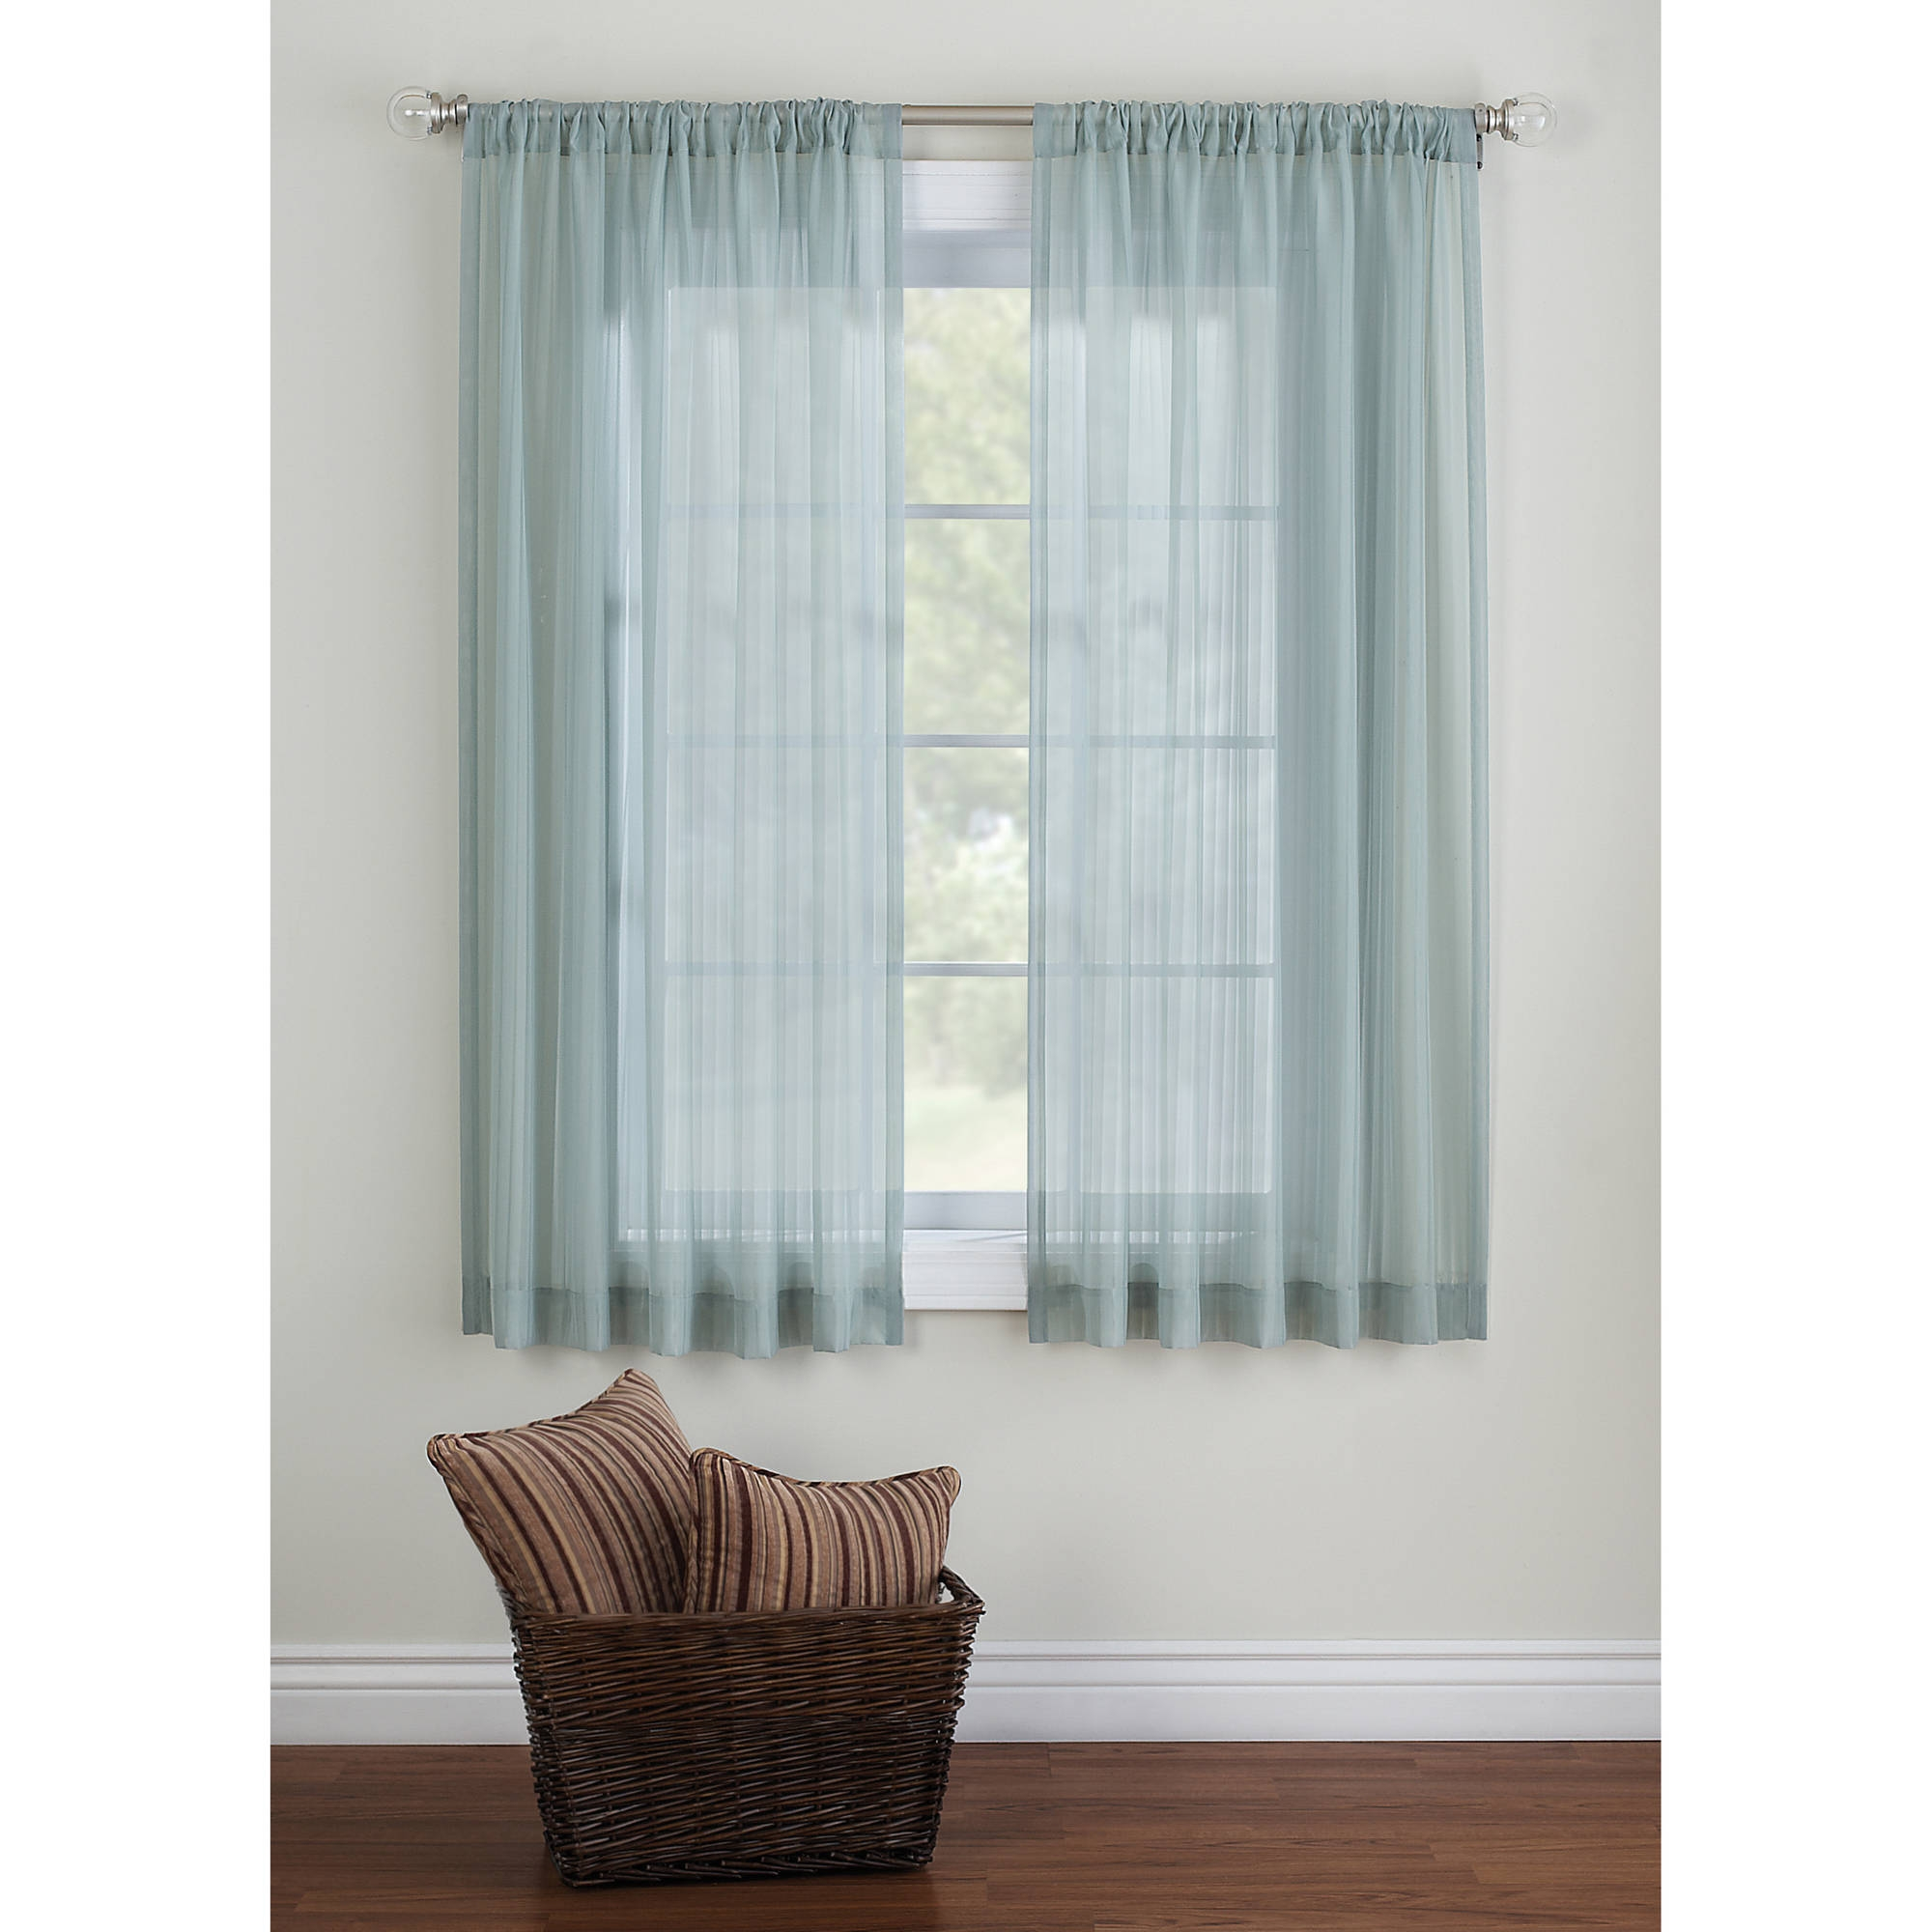 Pintuck Rod Pocket Sheer Curtain Panel Walmart With Curtains Sheers (Image 15 of 25)